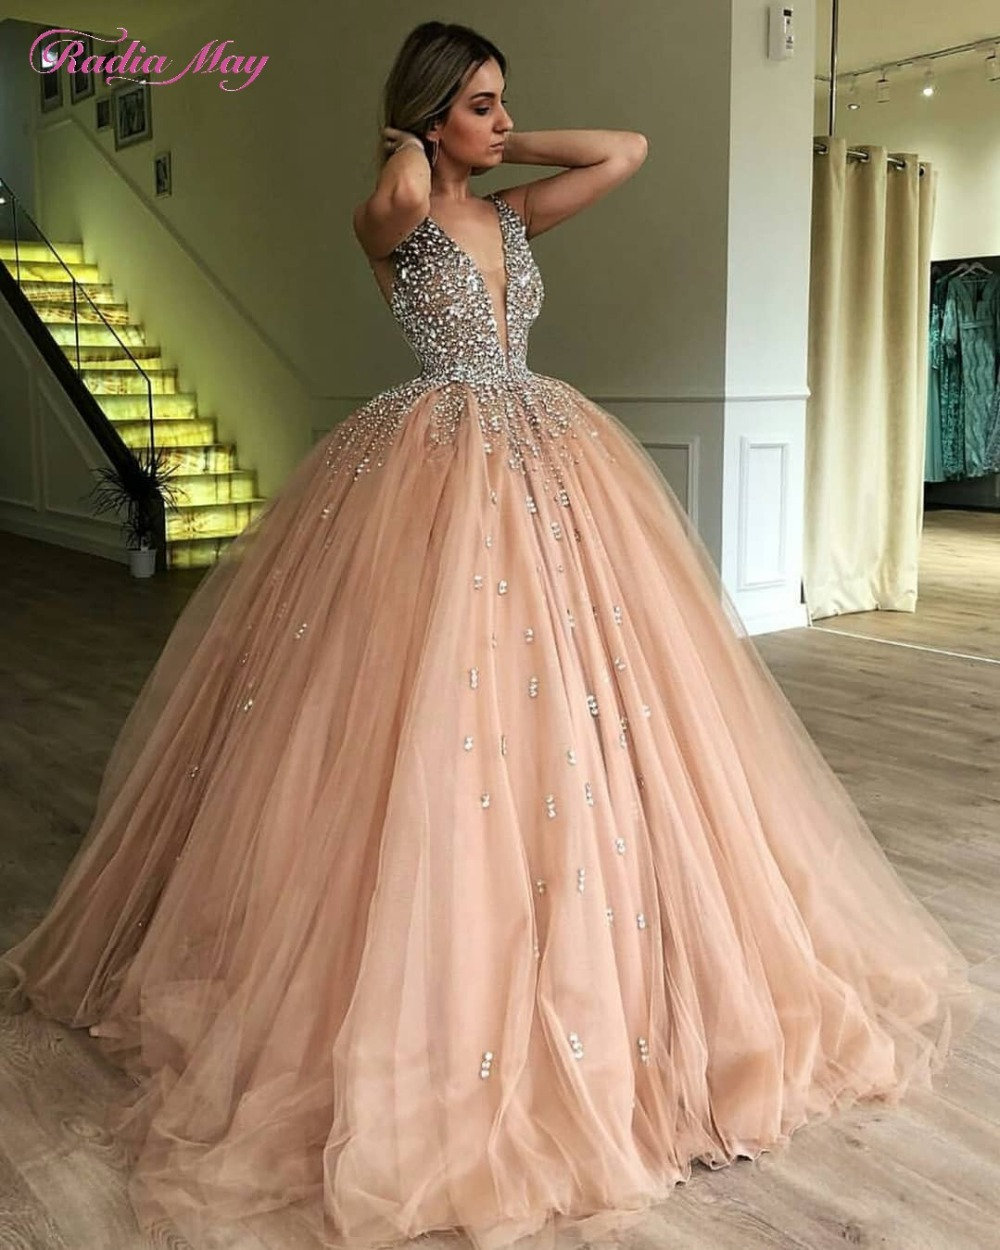 Us 1680 25 Offchampagne Tulle Princess Ball Gown Quinceanera Dresses 2019 Vestidos 15 Anos V Neck Crystal Sweet 16 Dress Birthday Party Gowns In